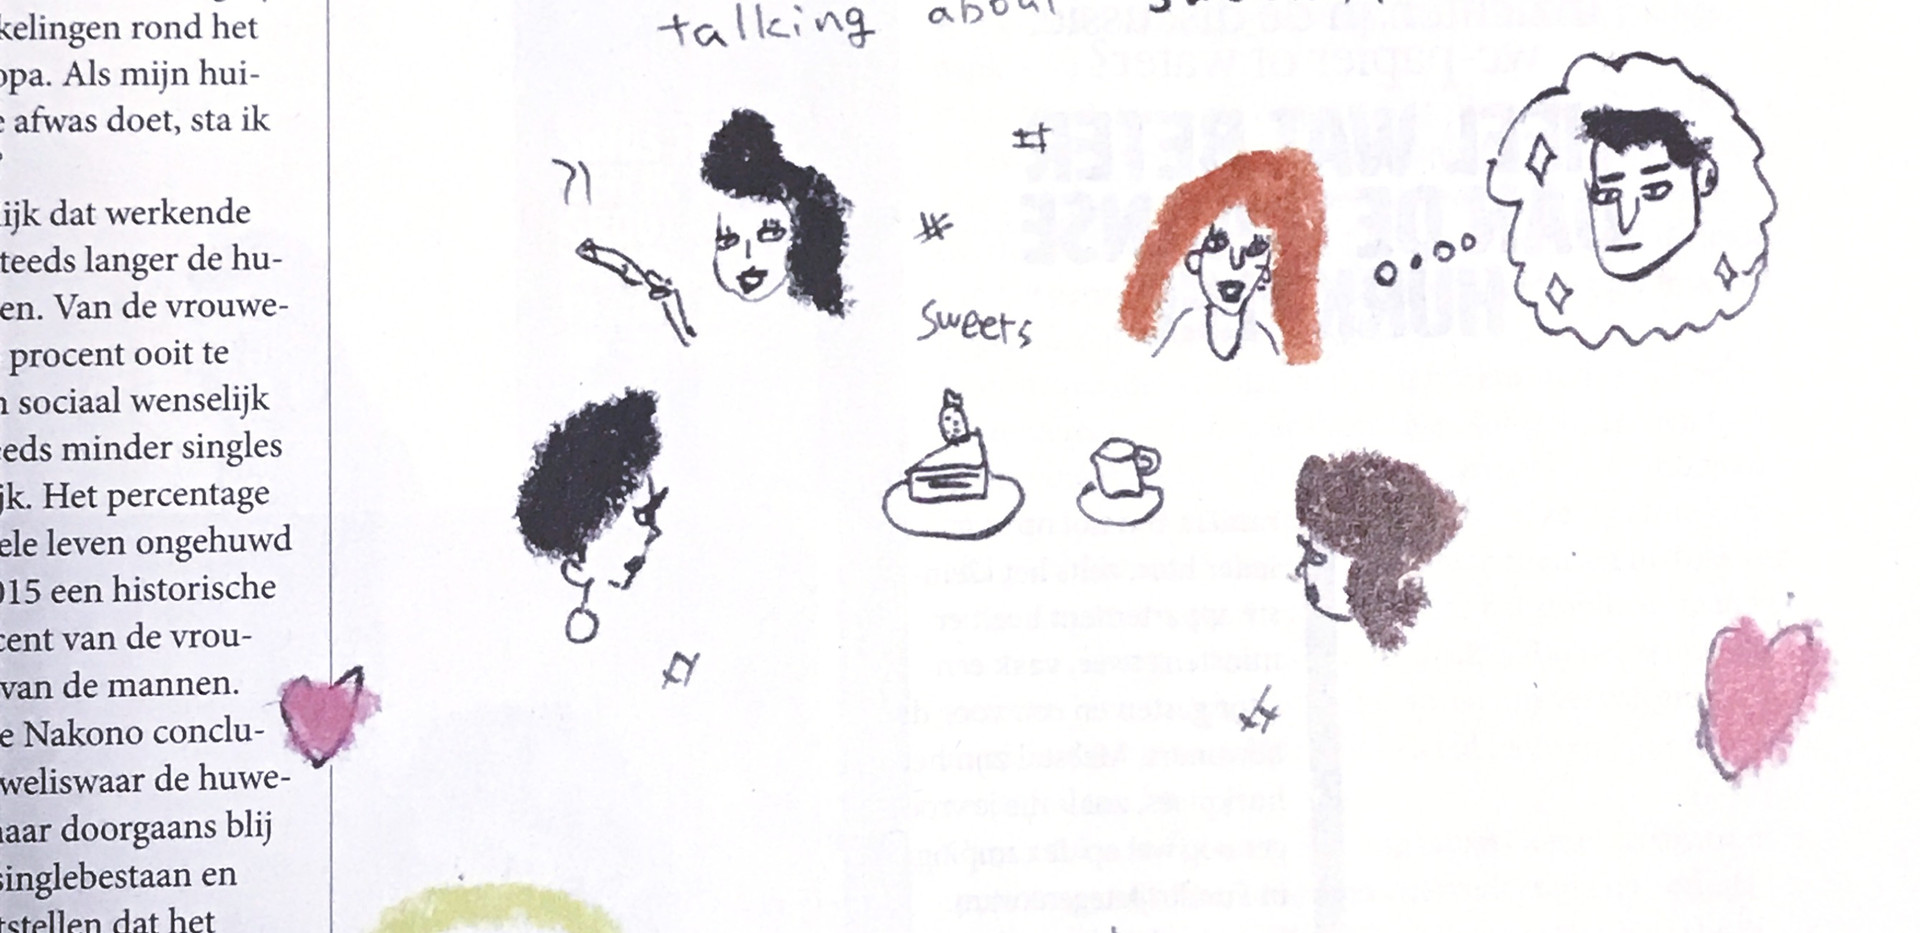 illustrations about the girls' association.